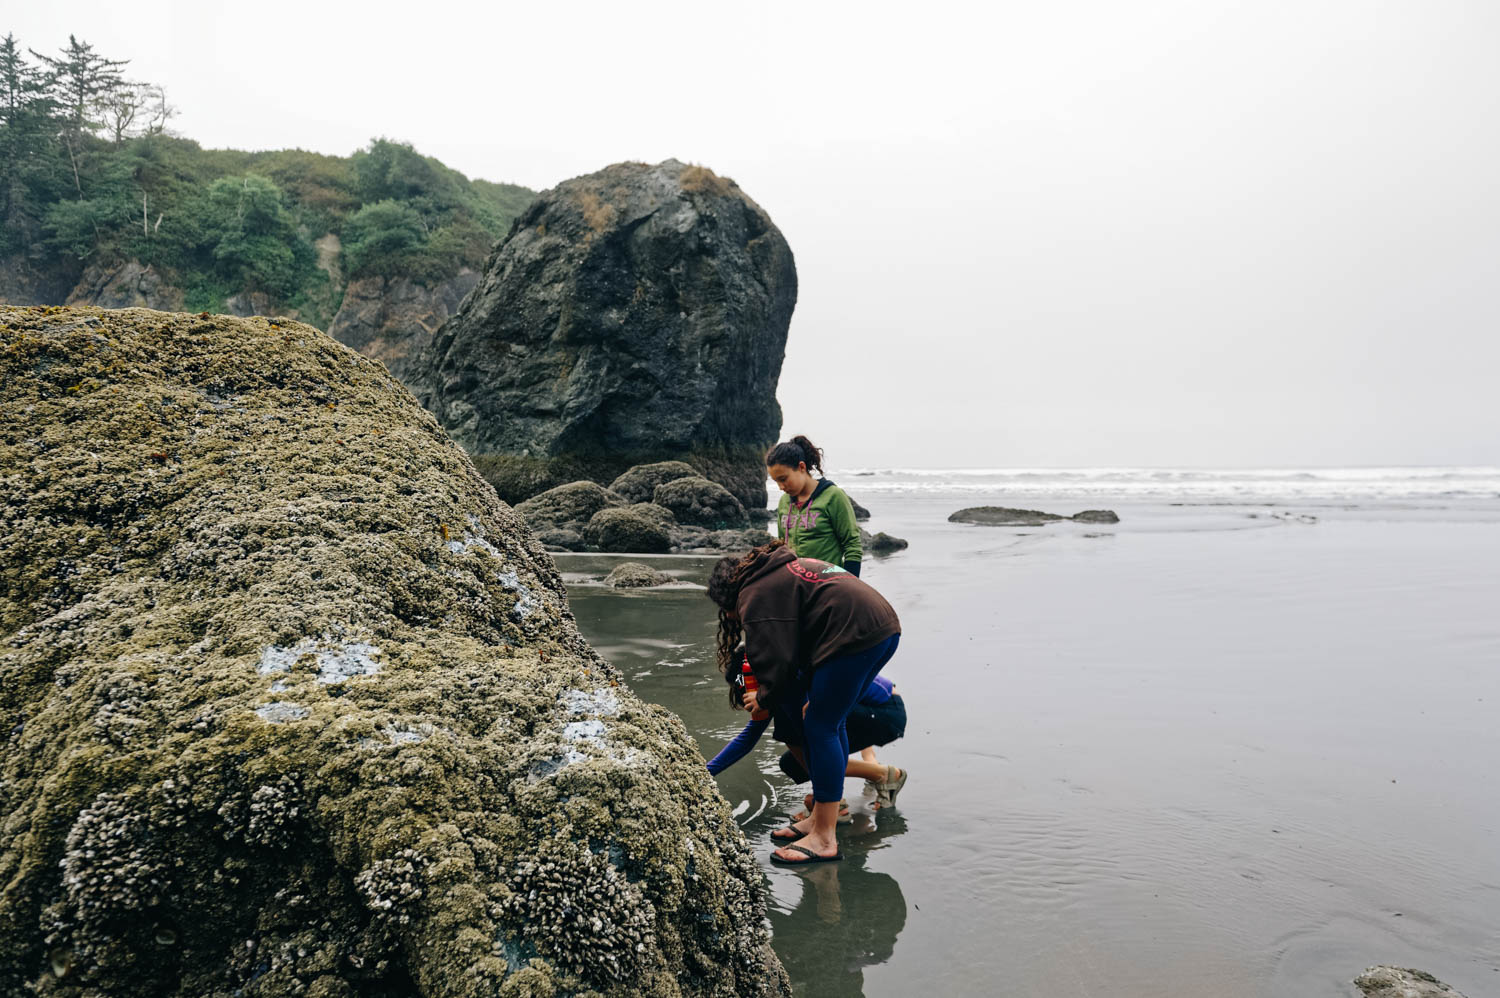 Exploring the tide pools at Ruby Beach